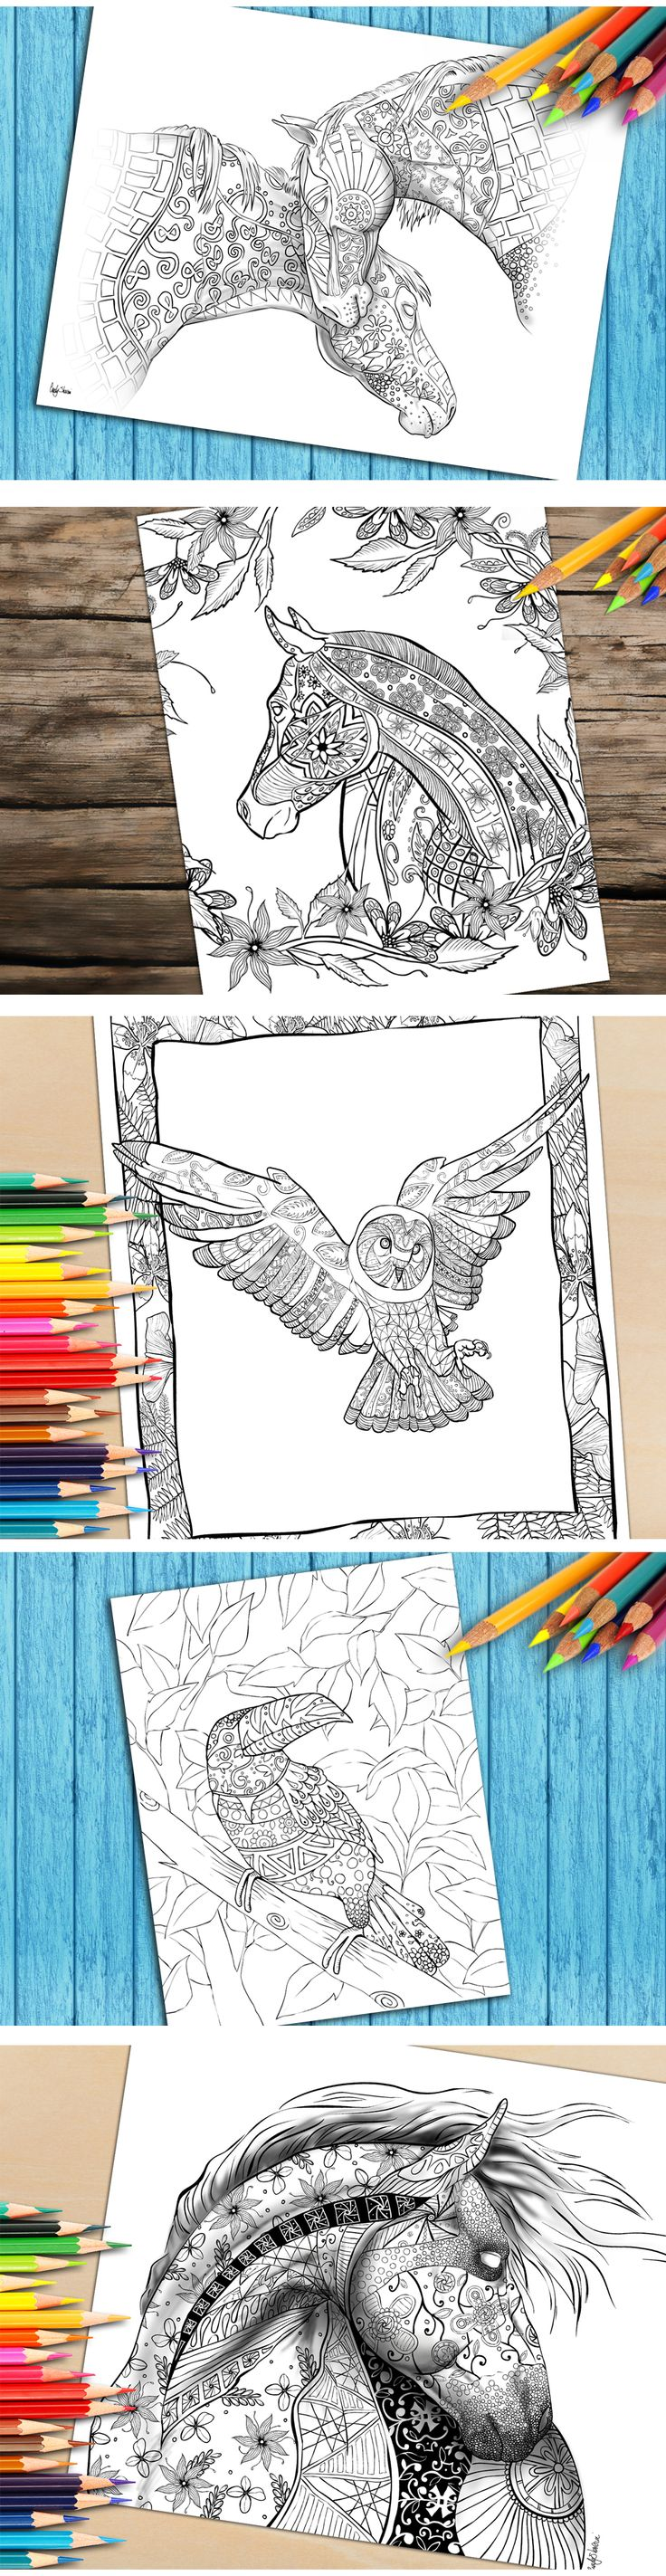 Coloring books for people with dementia - Adult Coloring Books And Pages Posters And Cards By Selahworksart